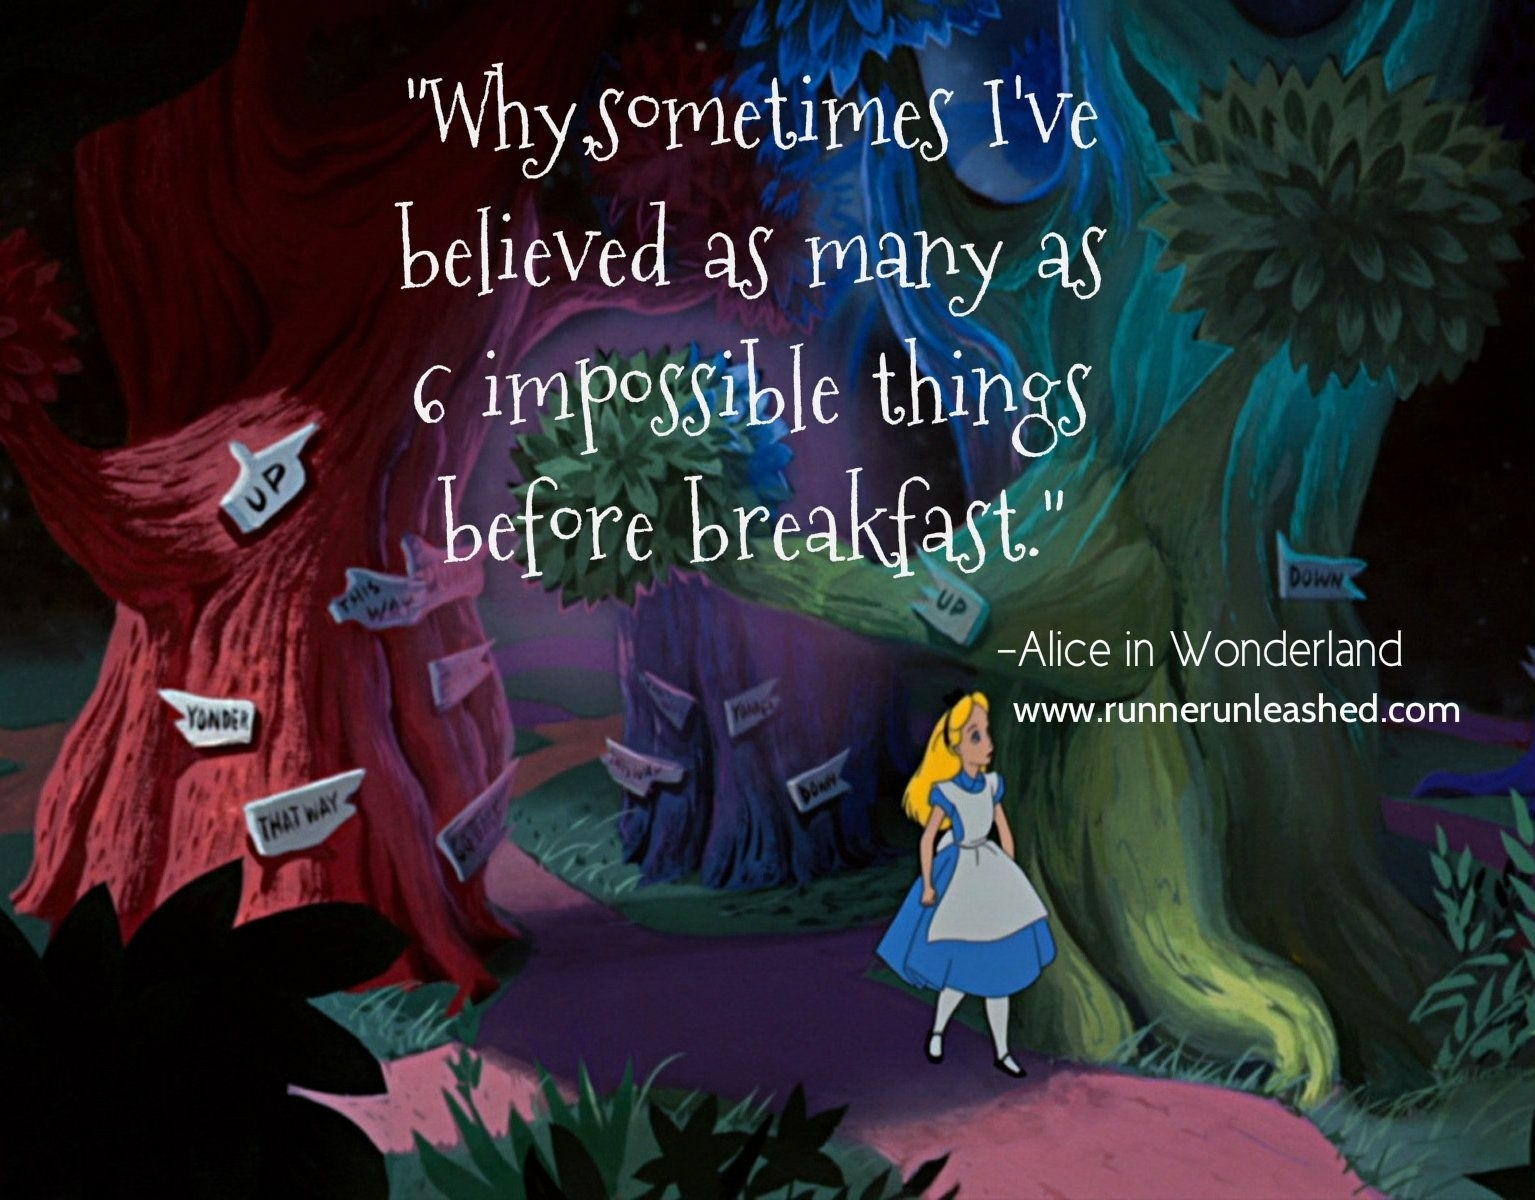 10 Latest Disney Alice In Wonderland Wallpaper FULL HD 1080p For PC Background